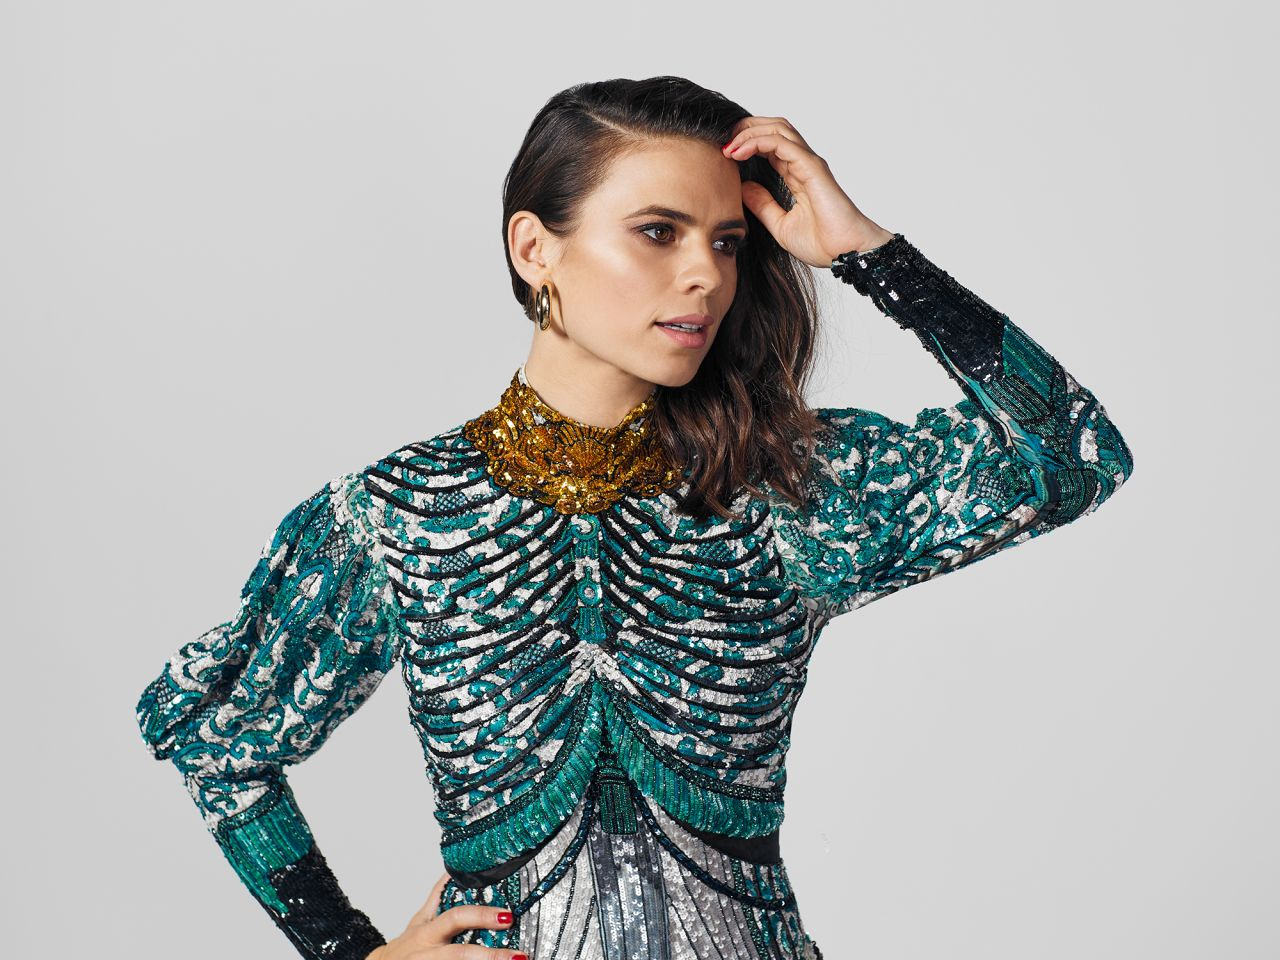 http://celebmafia.com/wp-content/uploads/2018/05/hayley-atwell-photoshoot-for-harper-s-bazaar-april-2018-5.jpg